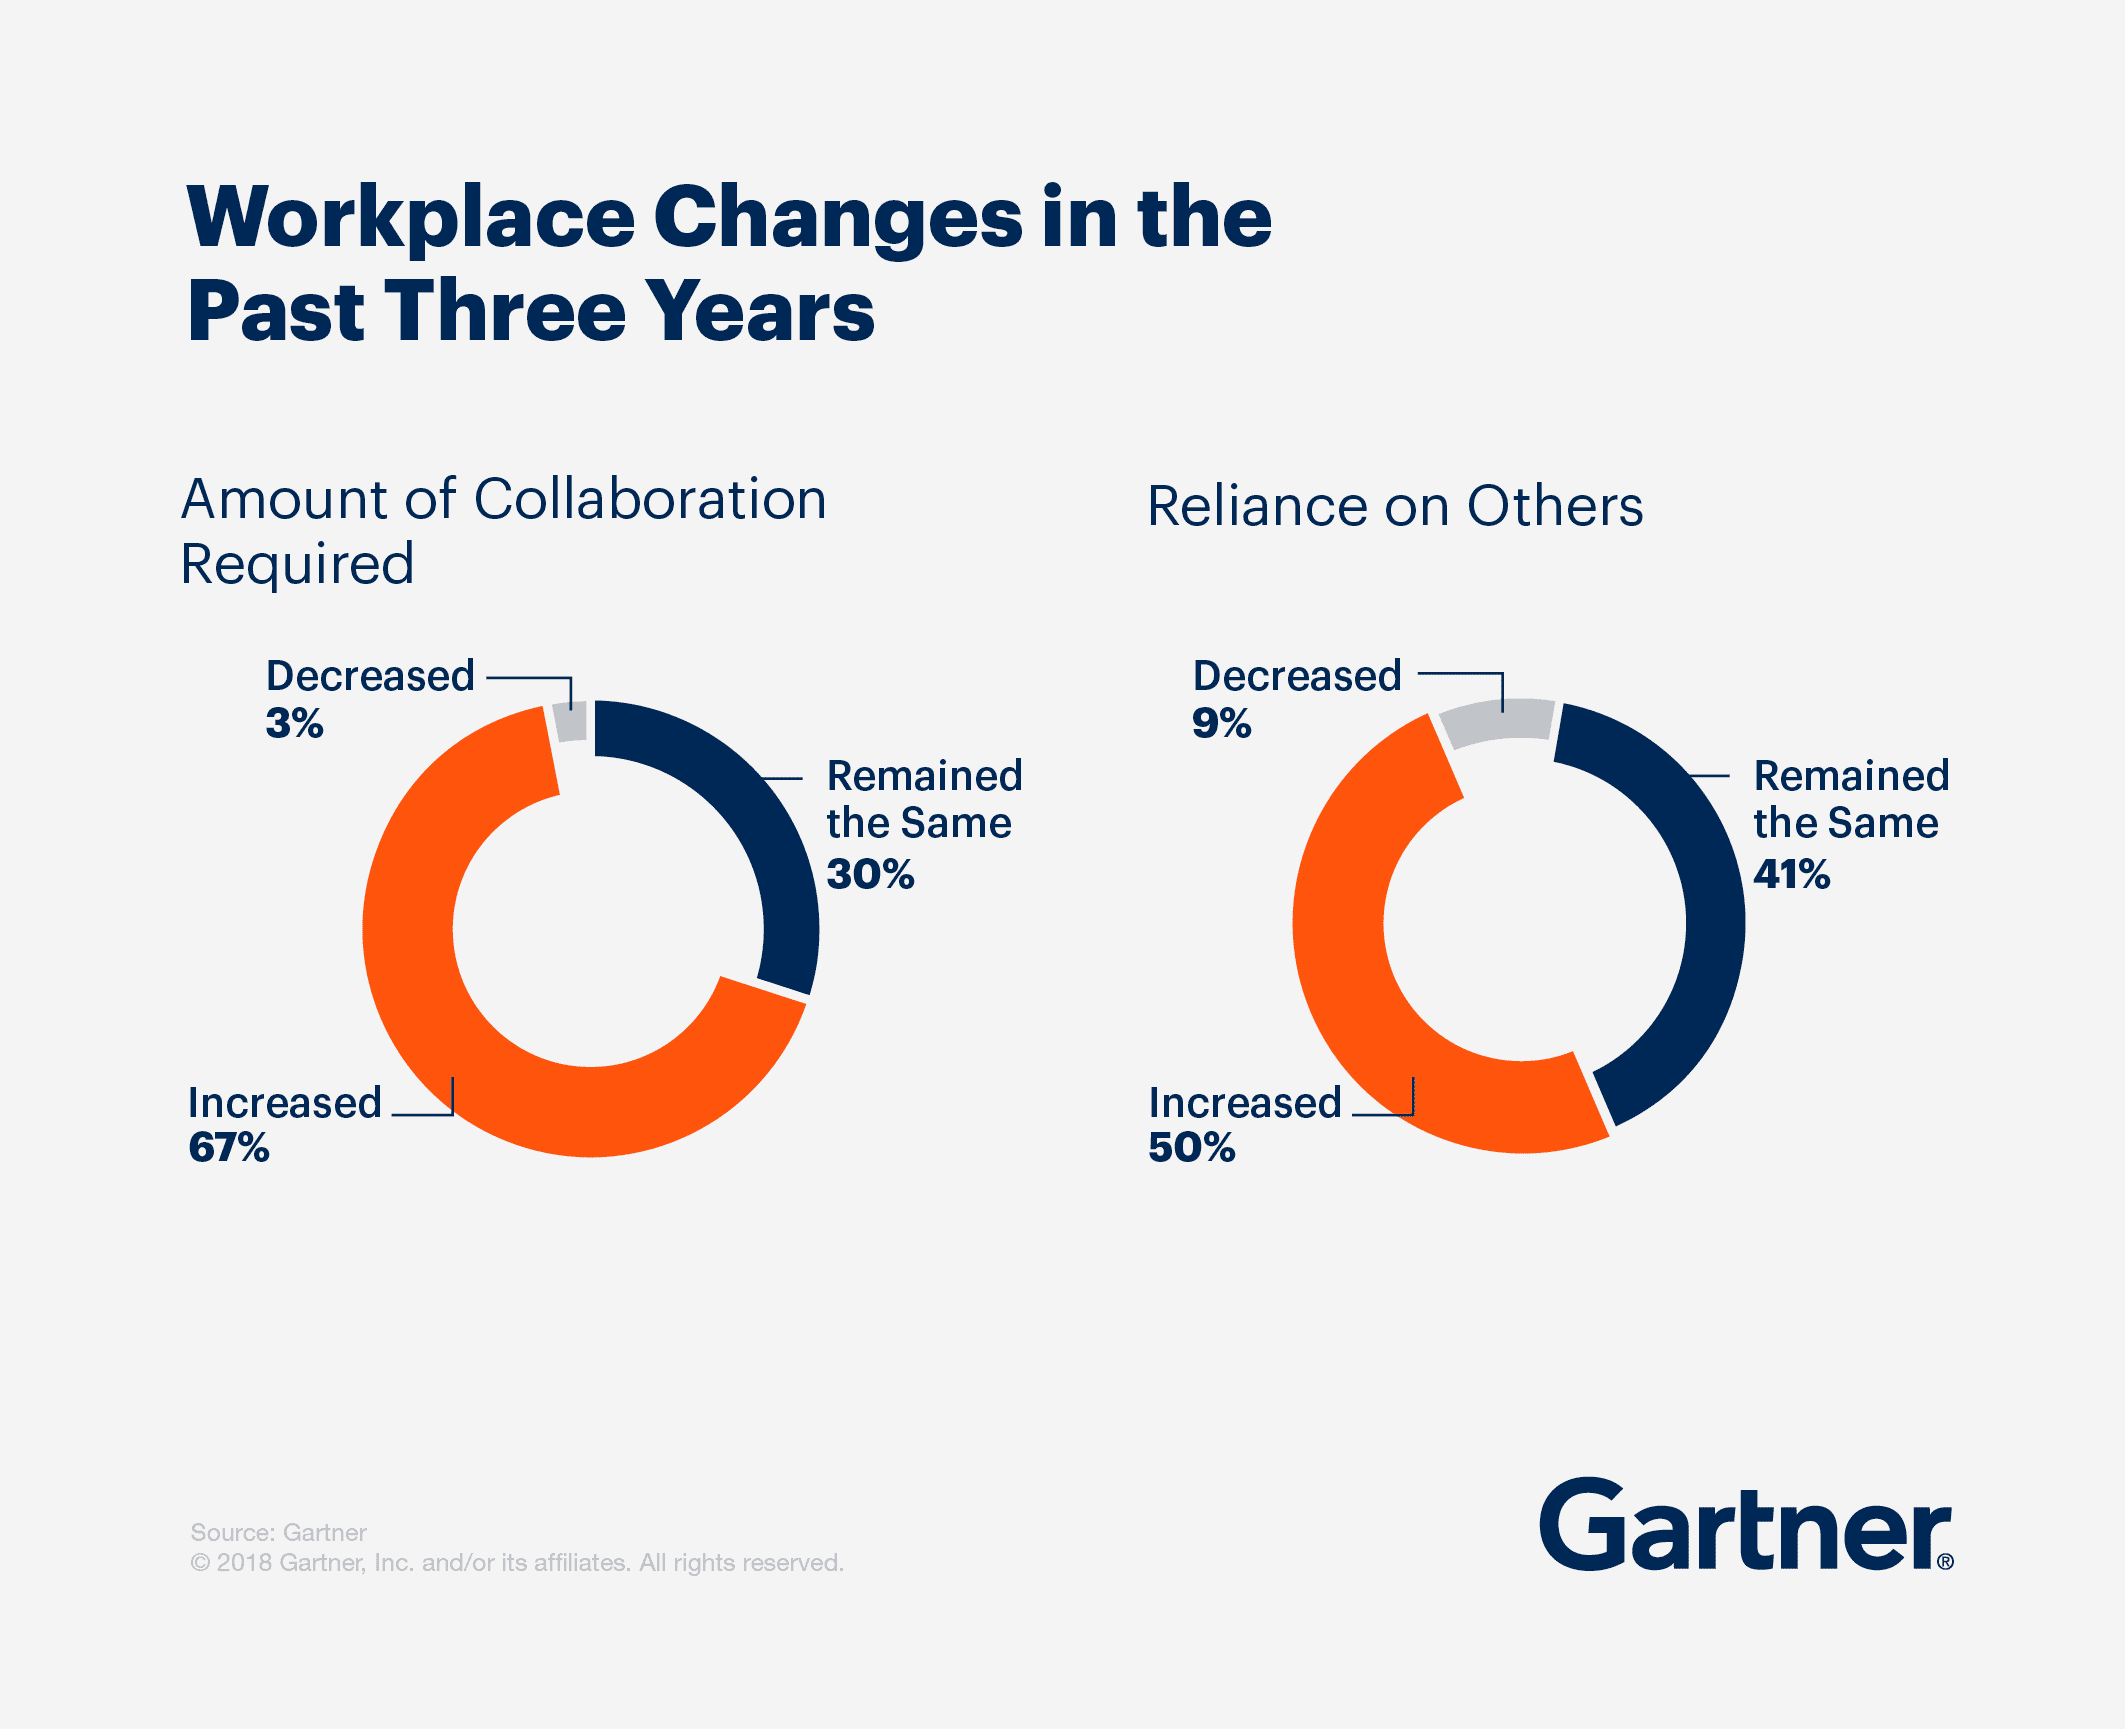 Workplace changes these past three years, show in in percentages of the amount of collaboration required and the reliance on others.